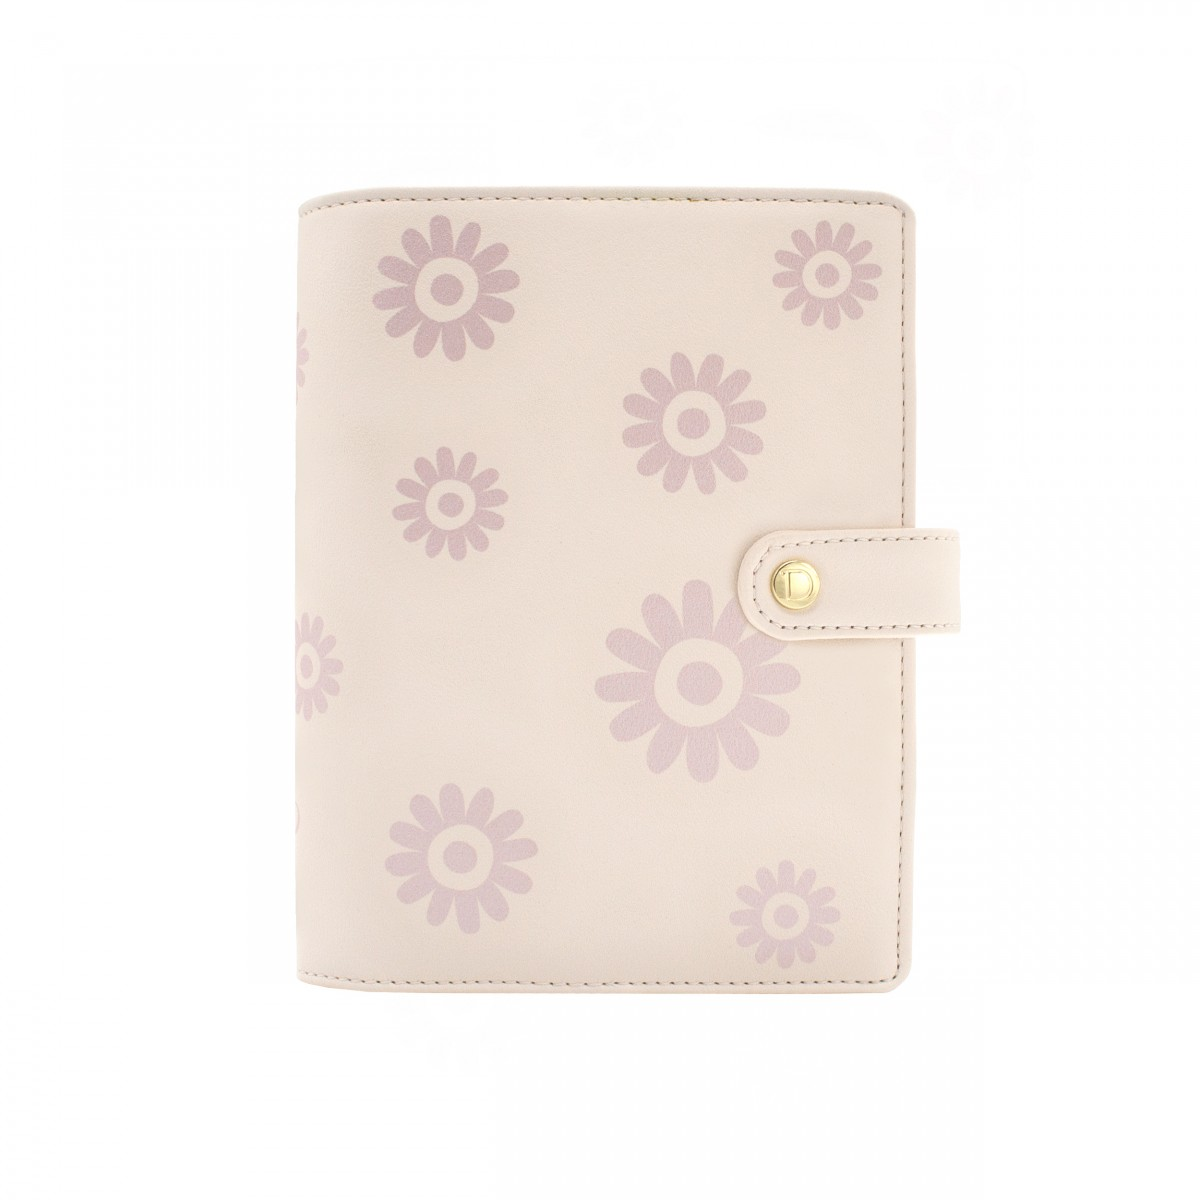 DISCAGENDA BLOSSOMS ROSEGOLD COVER PERSONAL SNAP CLOSURE